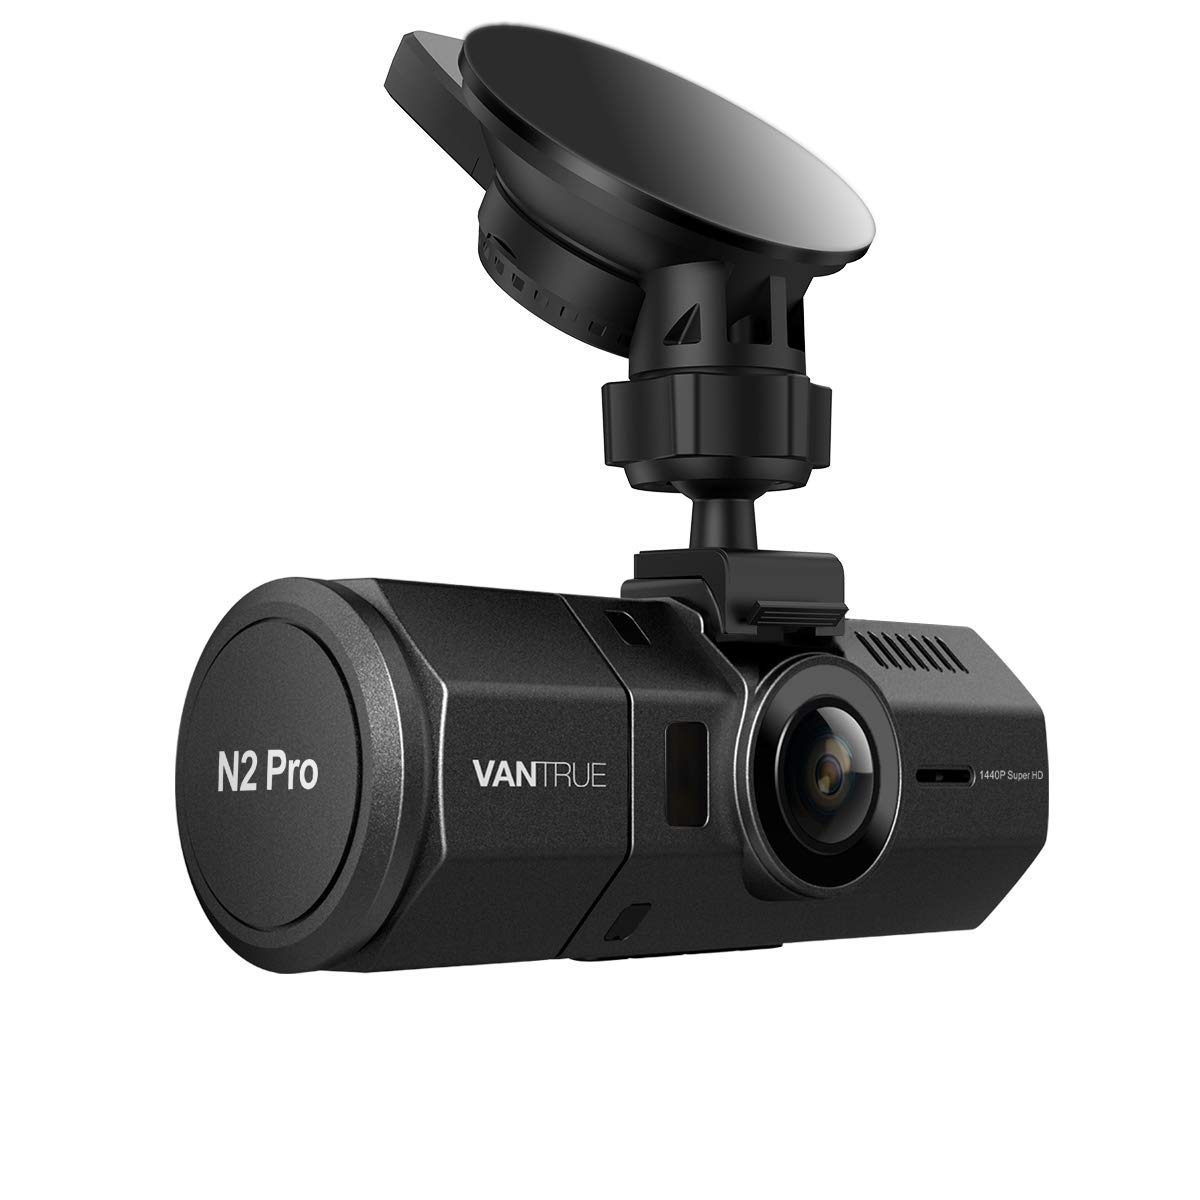 """Vantrue N2 Pro Uber Dual Dash Cam Infrared Night Vision Dual 1920x1080P Front and Inside Dash Camera (2.5K 2560x1440P Single Front) 1.5"""" 310° Car Camera, Parking Mode, Support 256GB max, Sony Sensor"""